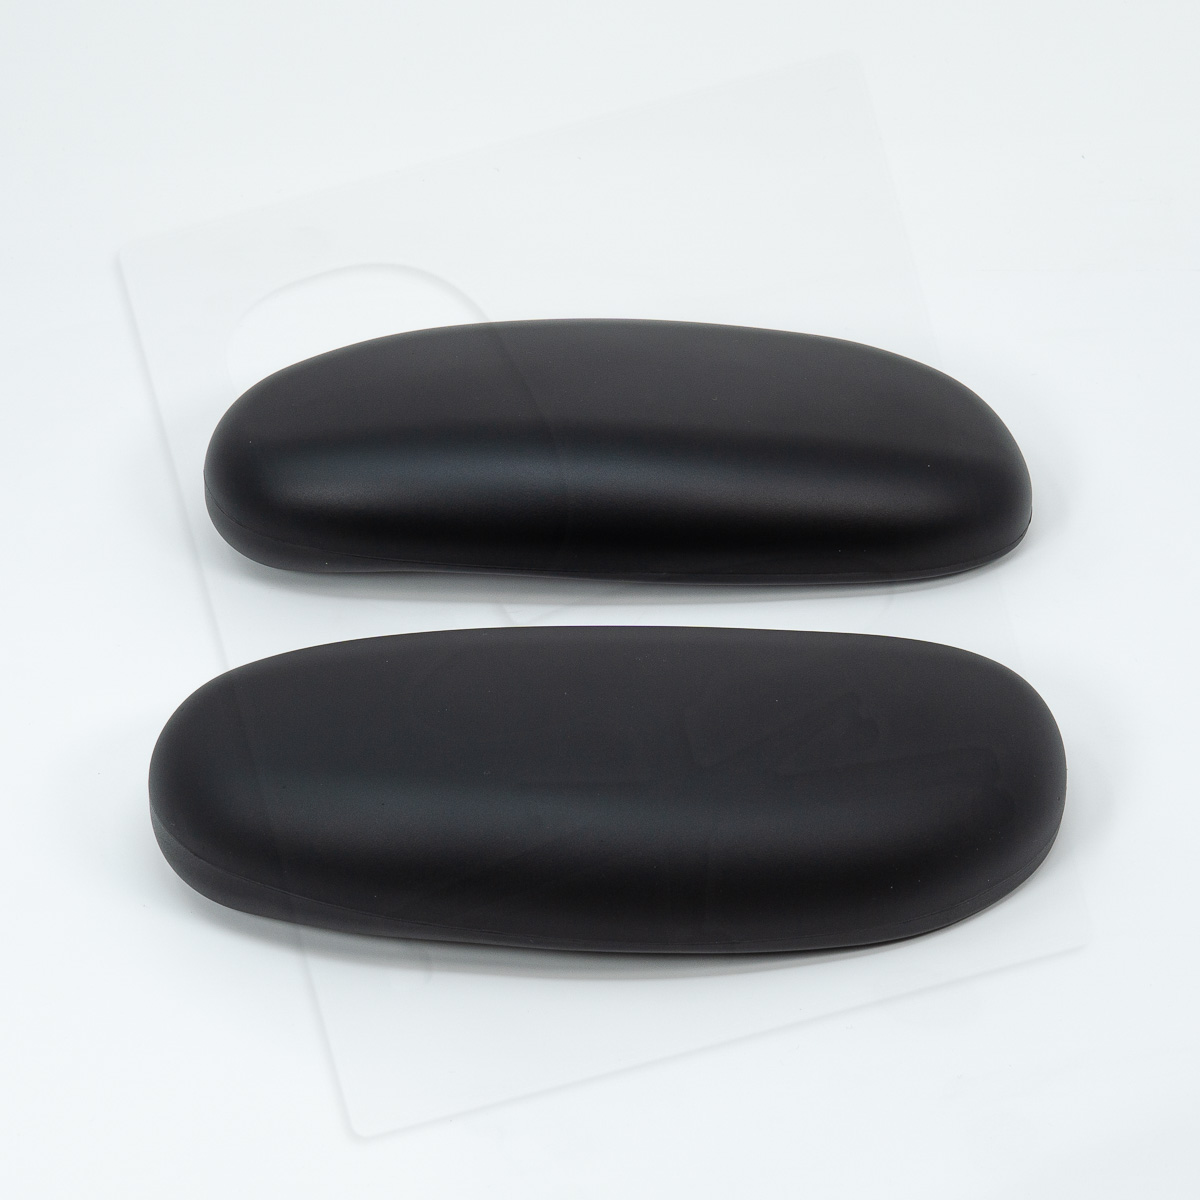 Crandall Office Furniture Aftermarket Steelcase Criterion Arm Pads 004